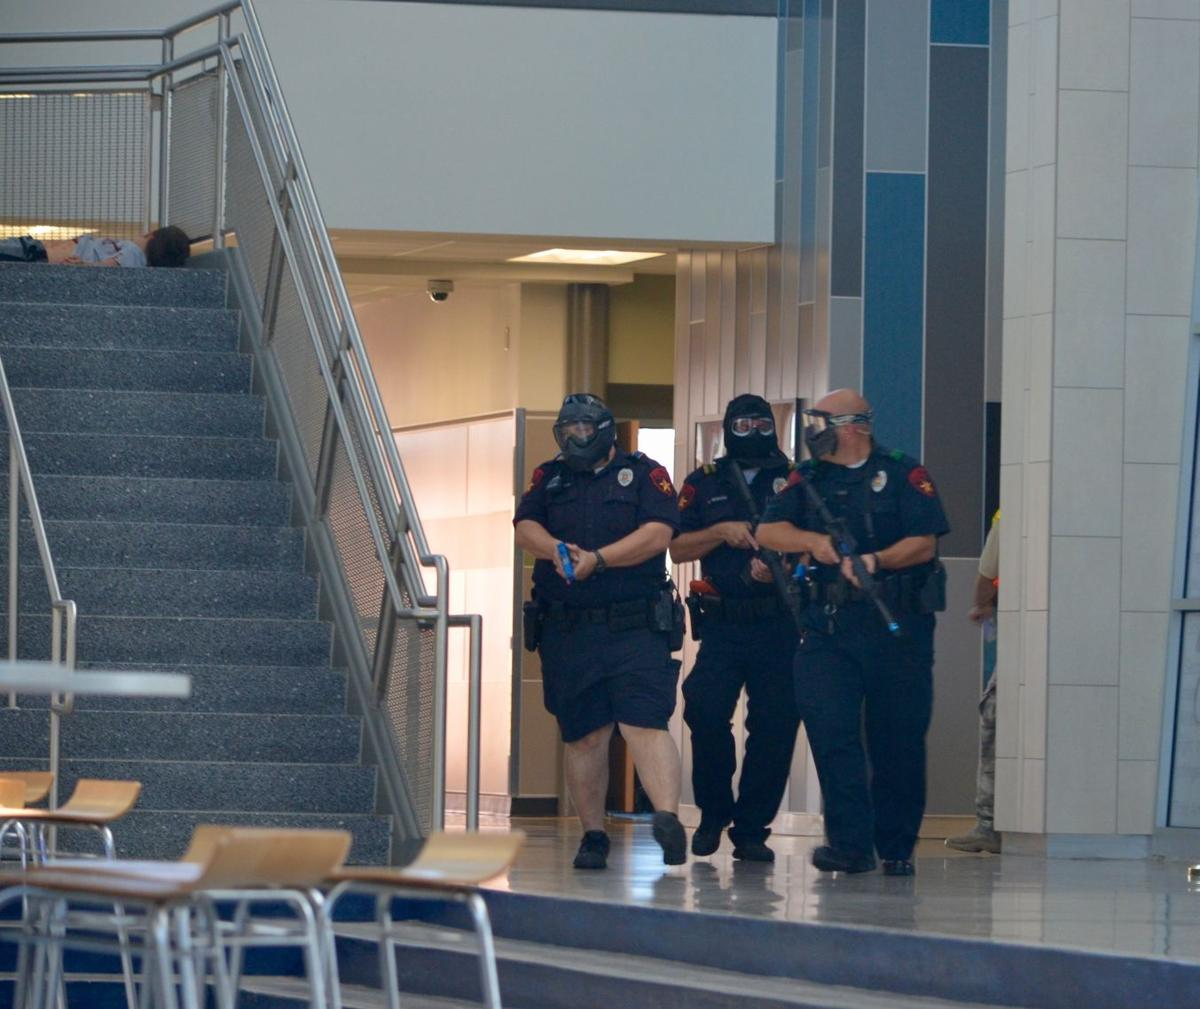 Shots Fired: Lewisville Police, Fire Departments Train On